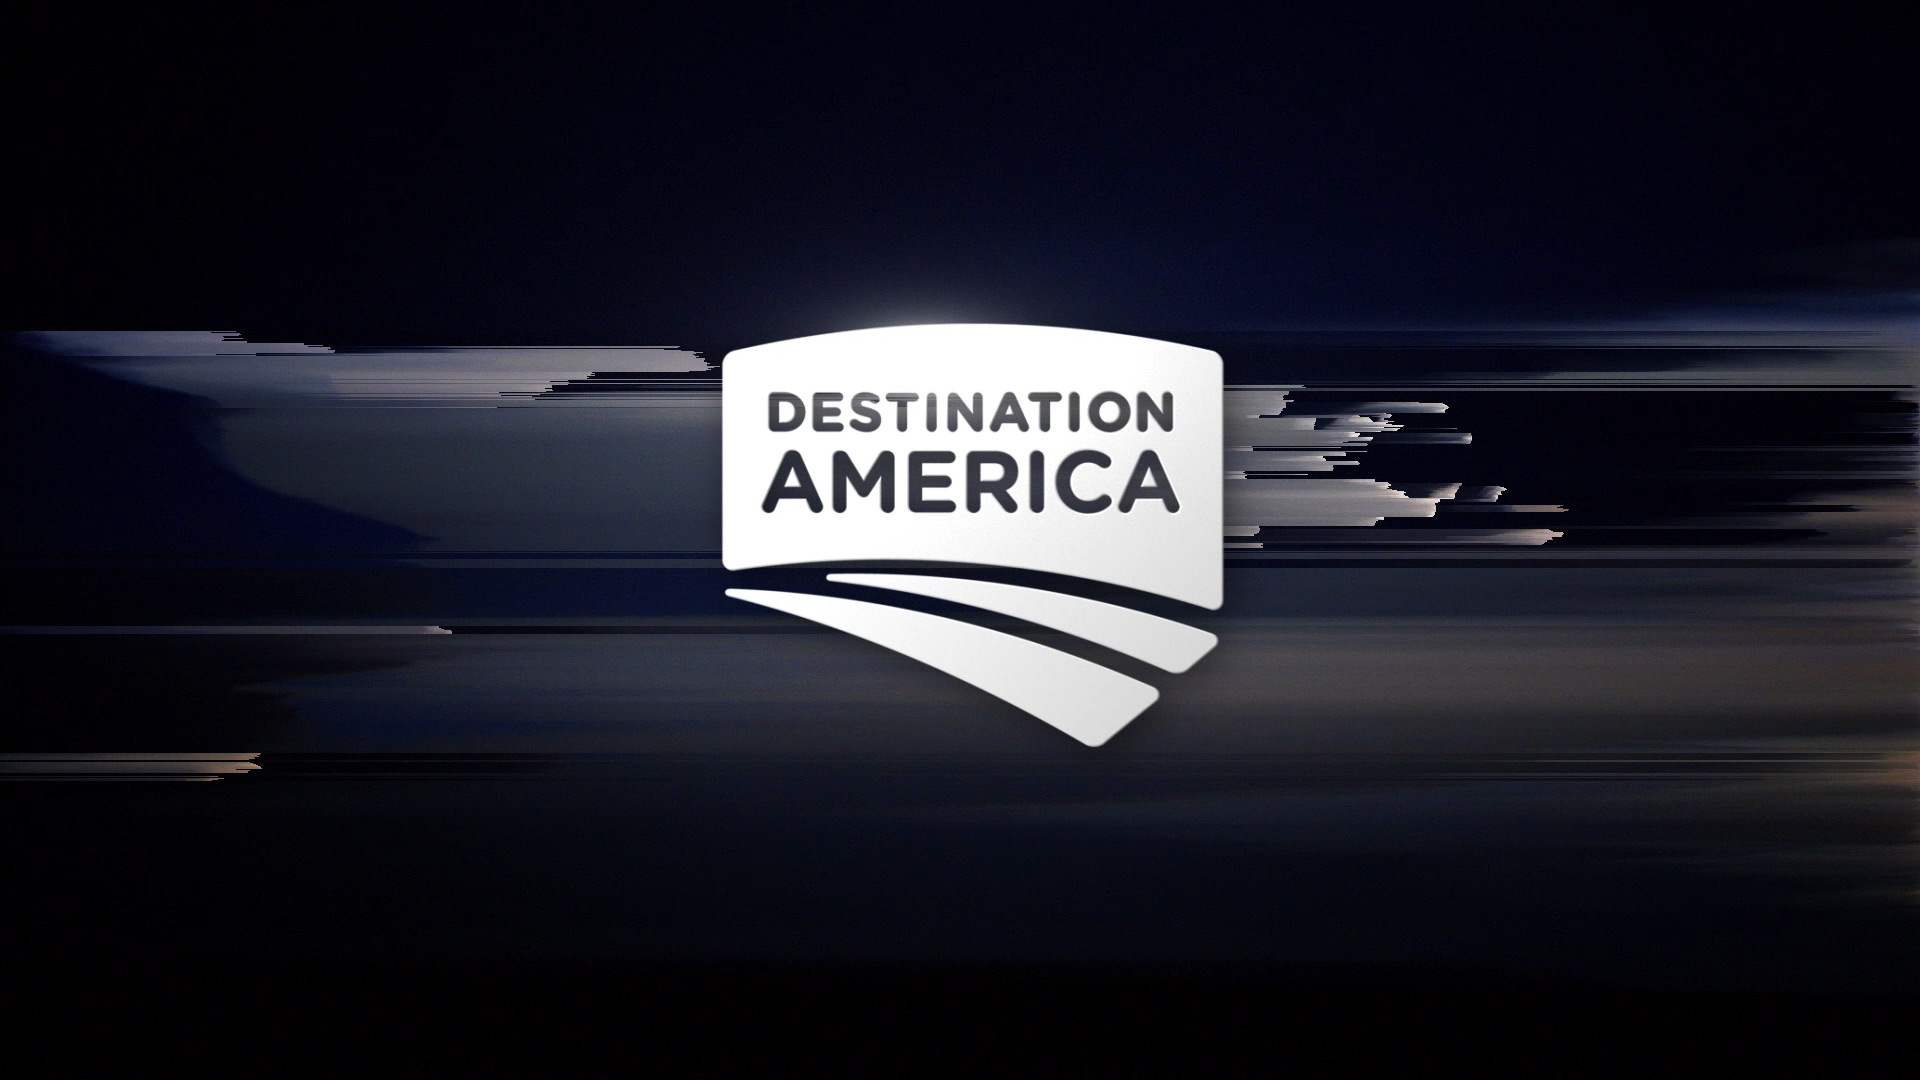 DESTINATION AMERICA    REBRAND